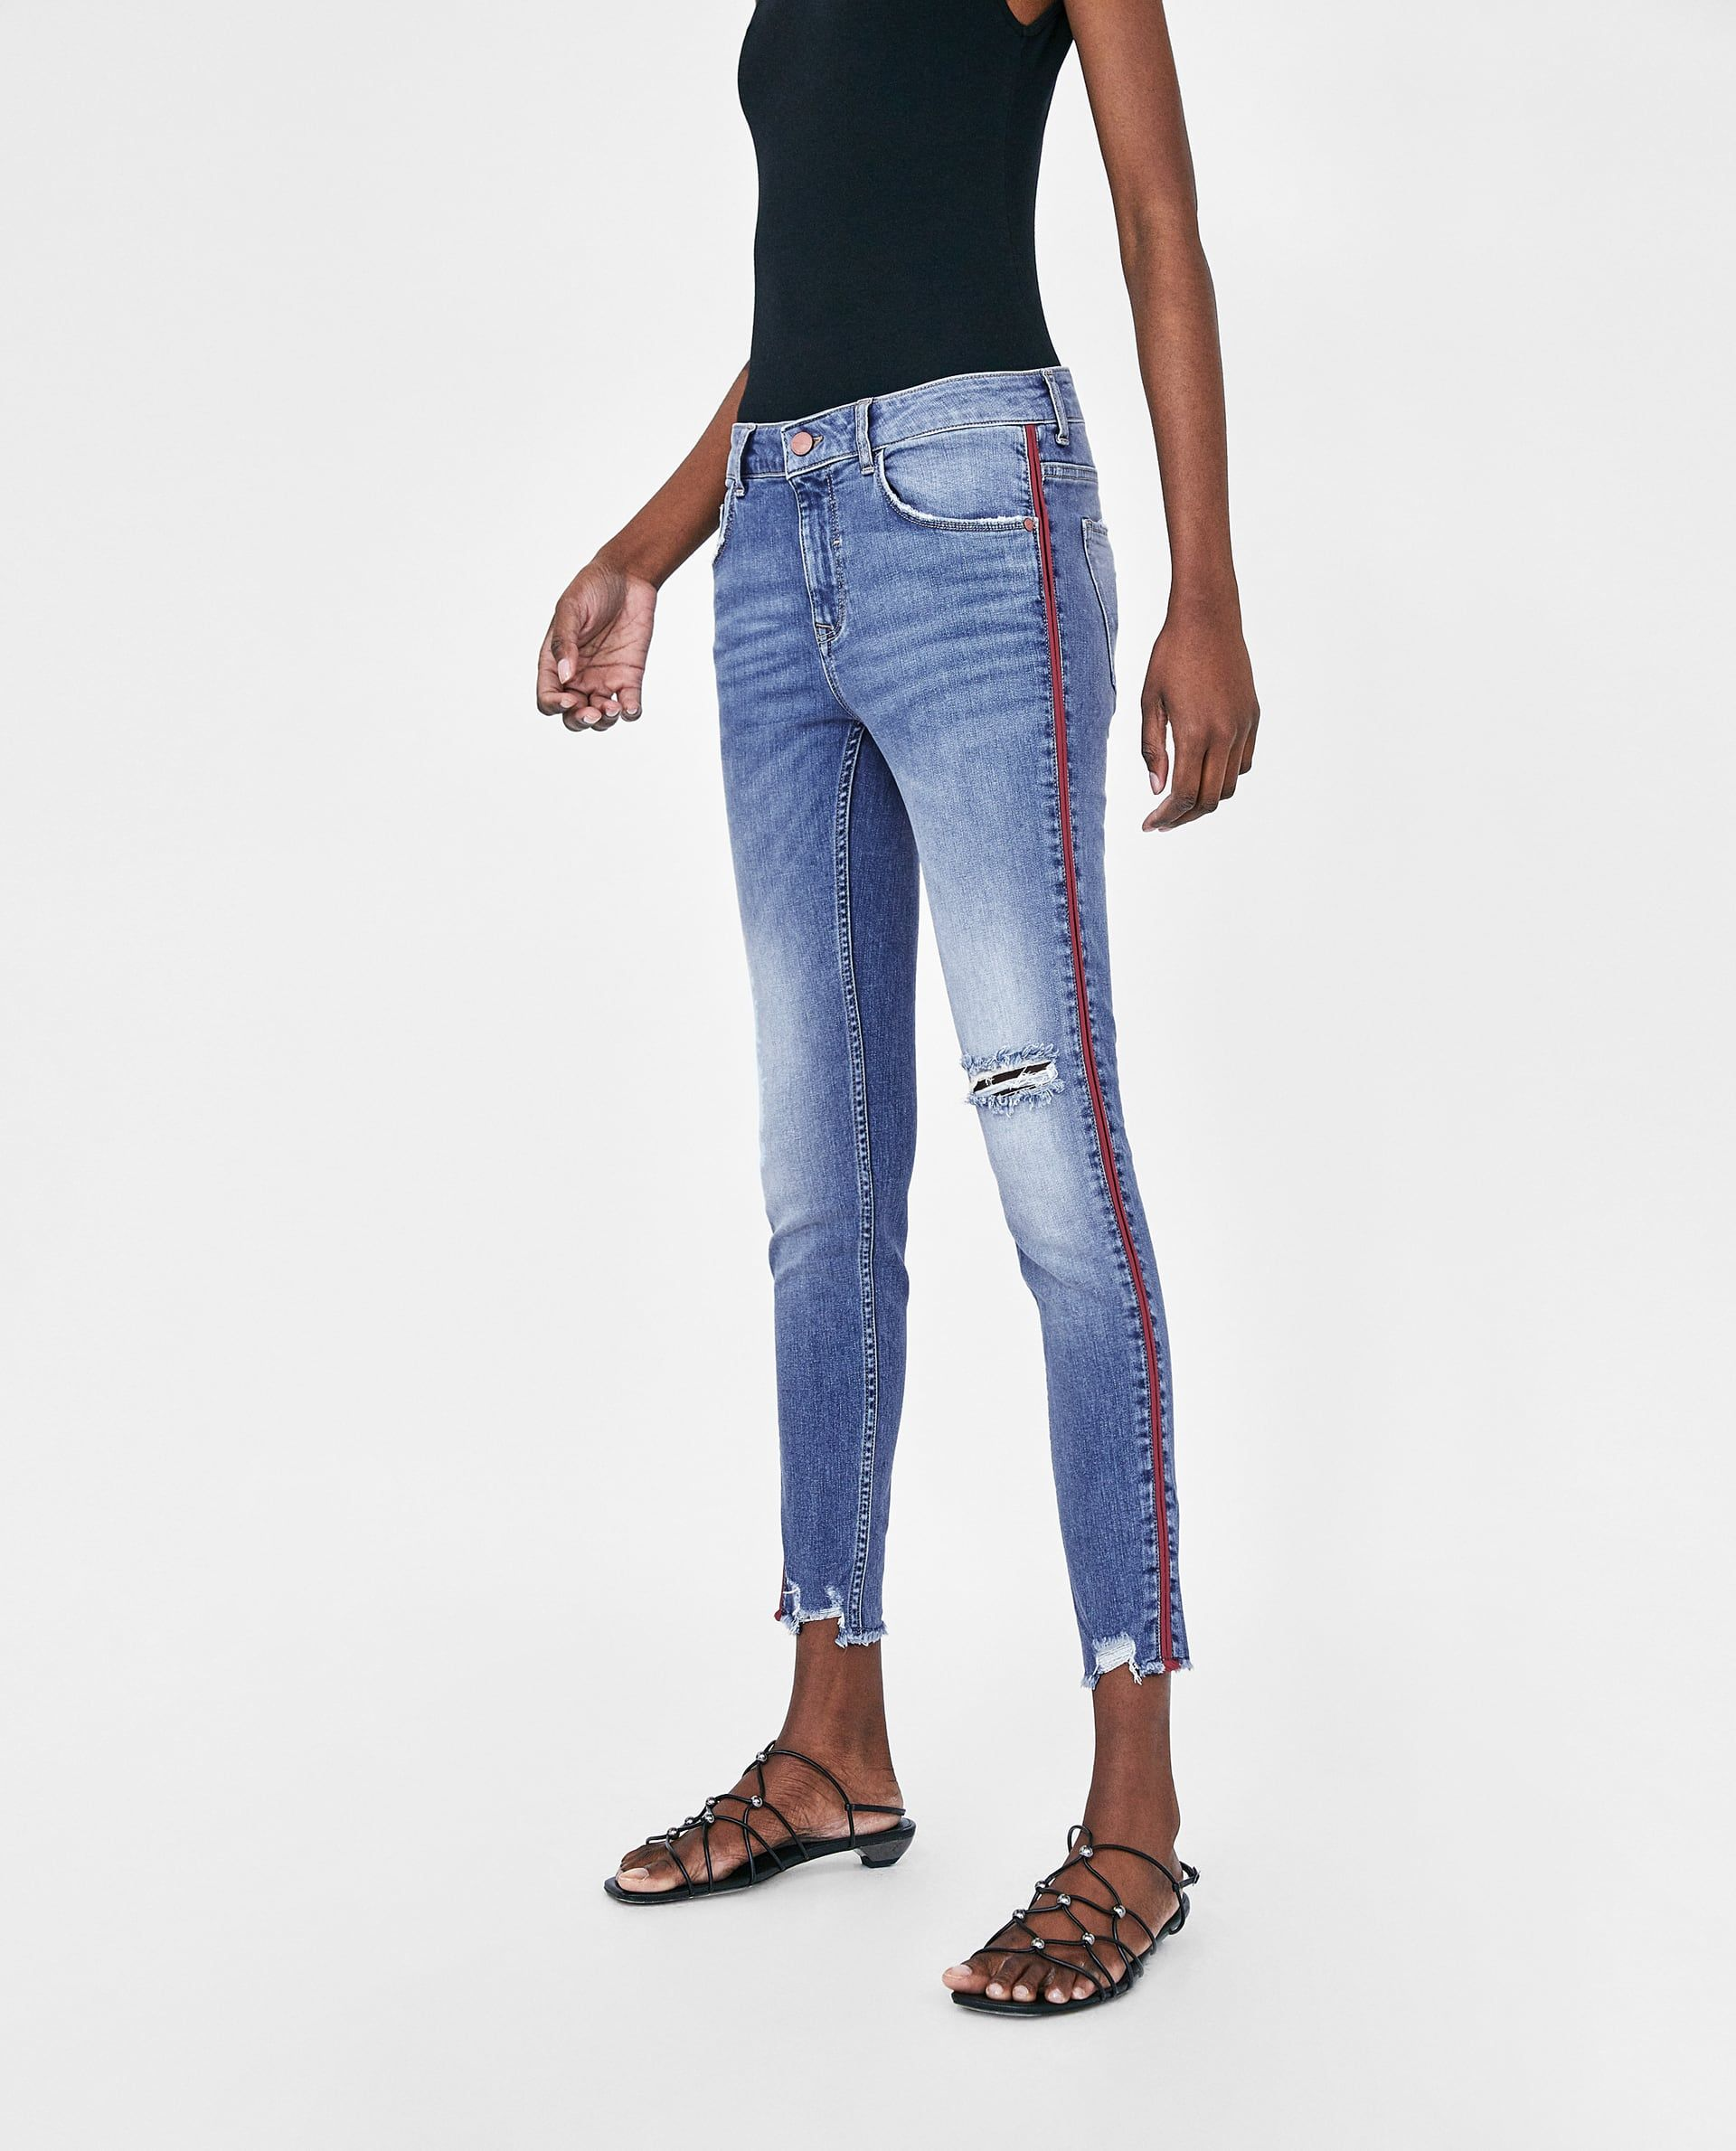 JEANS Z1975 BANDA LATERAL-Ver Todo-JEANS-MUJER  e477f3f43a56